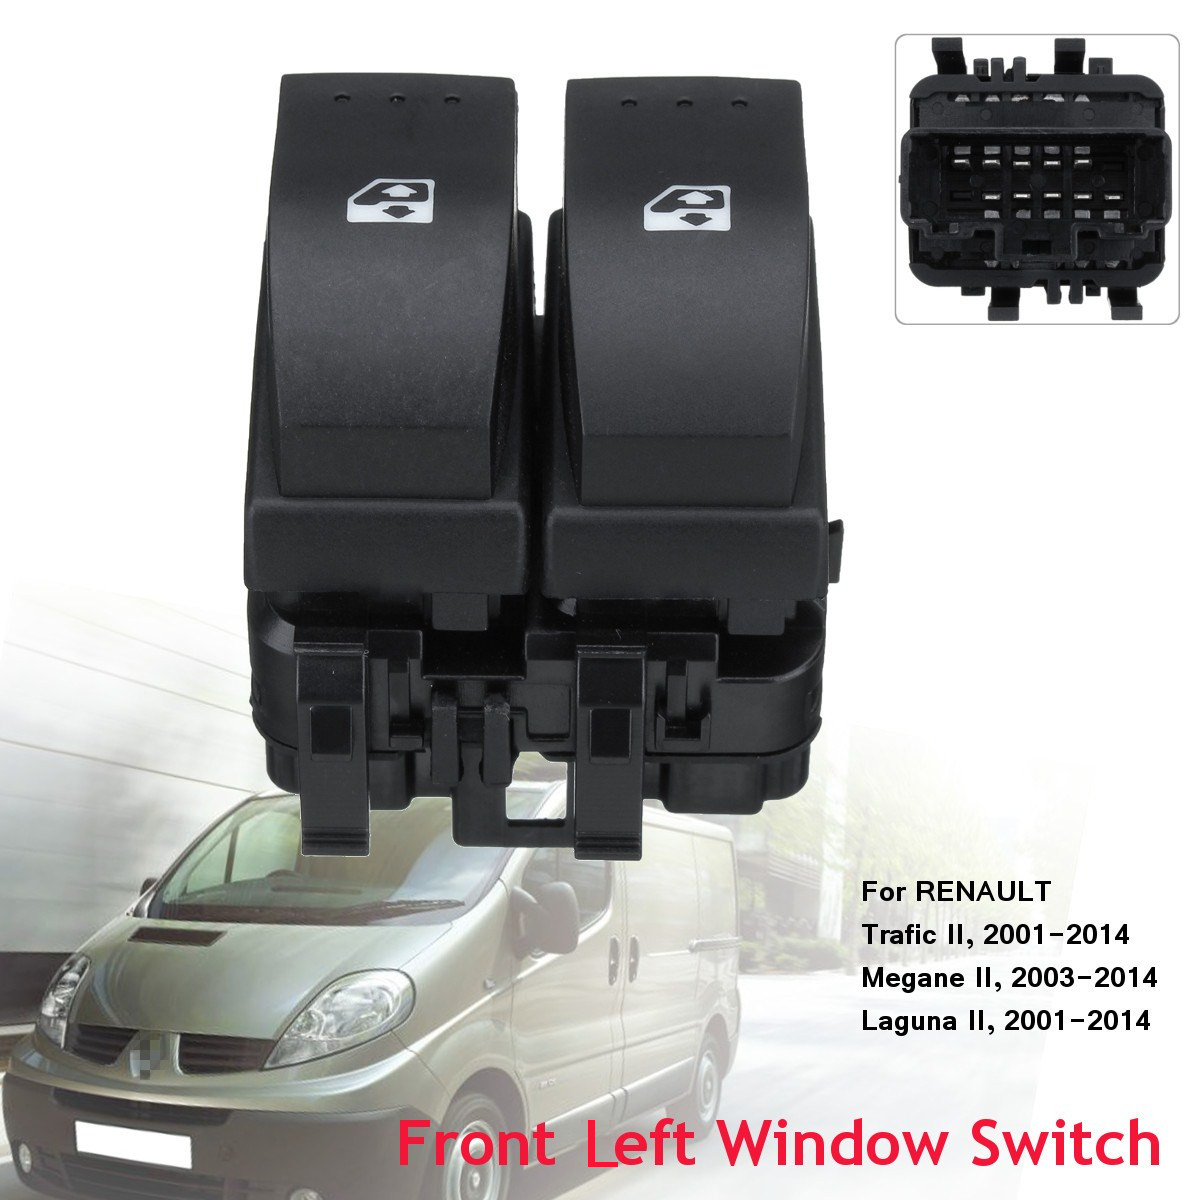 Car Front Left Window Lifter Switch 8200315034 For Renault Trafic II/Megane  II/Laguna II-in Car Switches & Relays from Automobiles & Motorcycles on ...